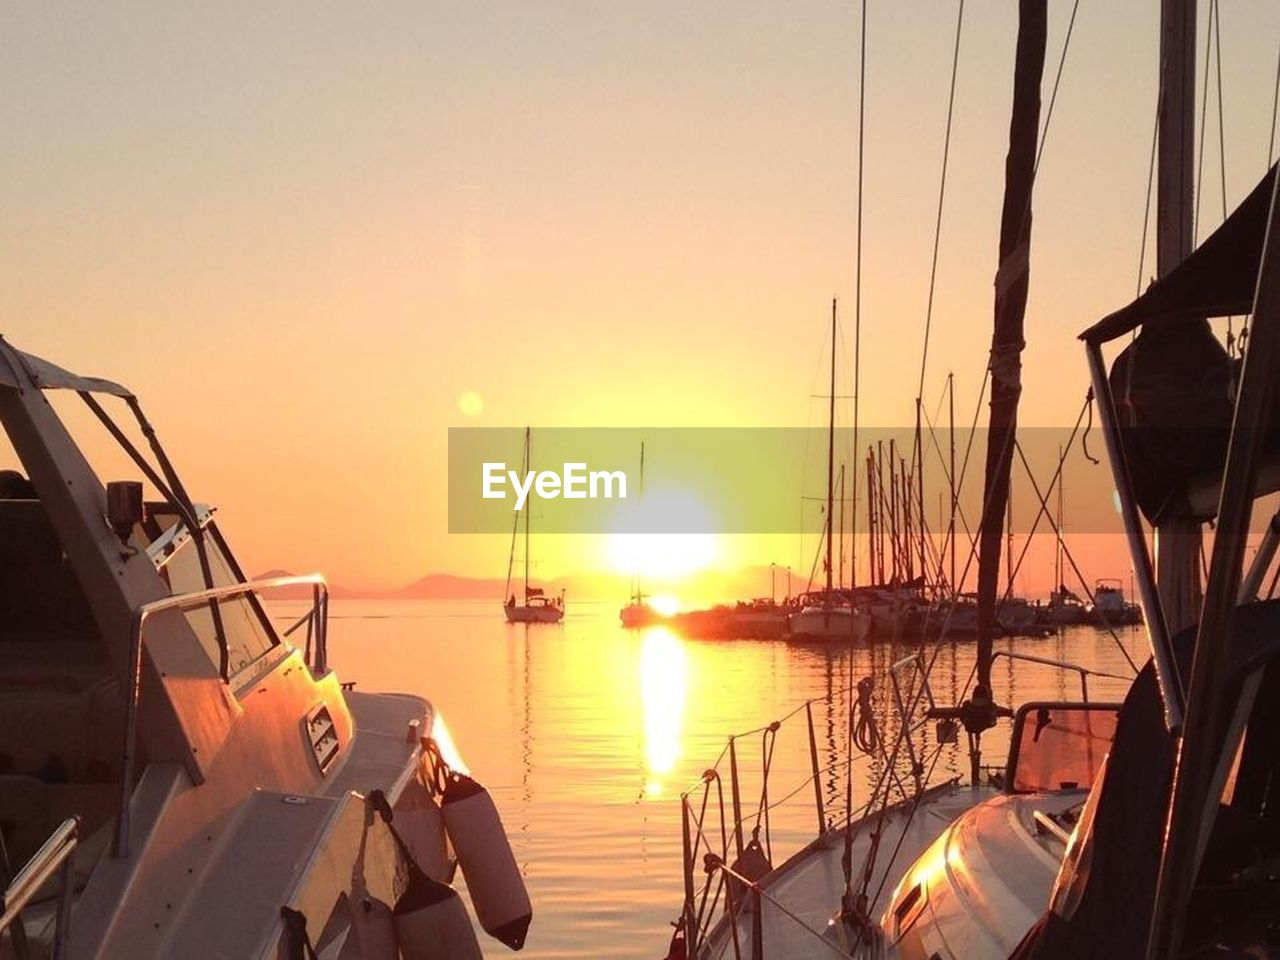 sunset, transportation, nautical vessel, reflection, mode of transport, moored, nature, boat, sunlight, orange color, tranquility, beauty in nature, sky, water, sun, scenics, tranquil scene, outdoors, harbor, mast, sea, no people, sailboat, yacht, day